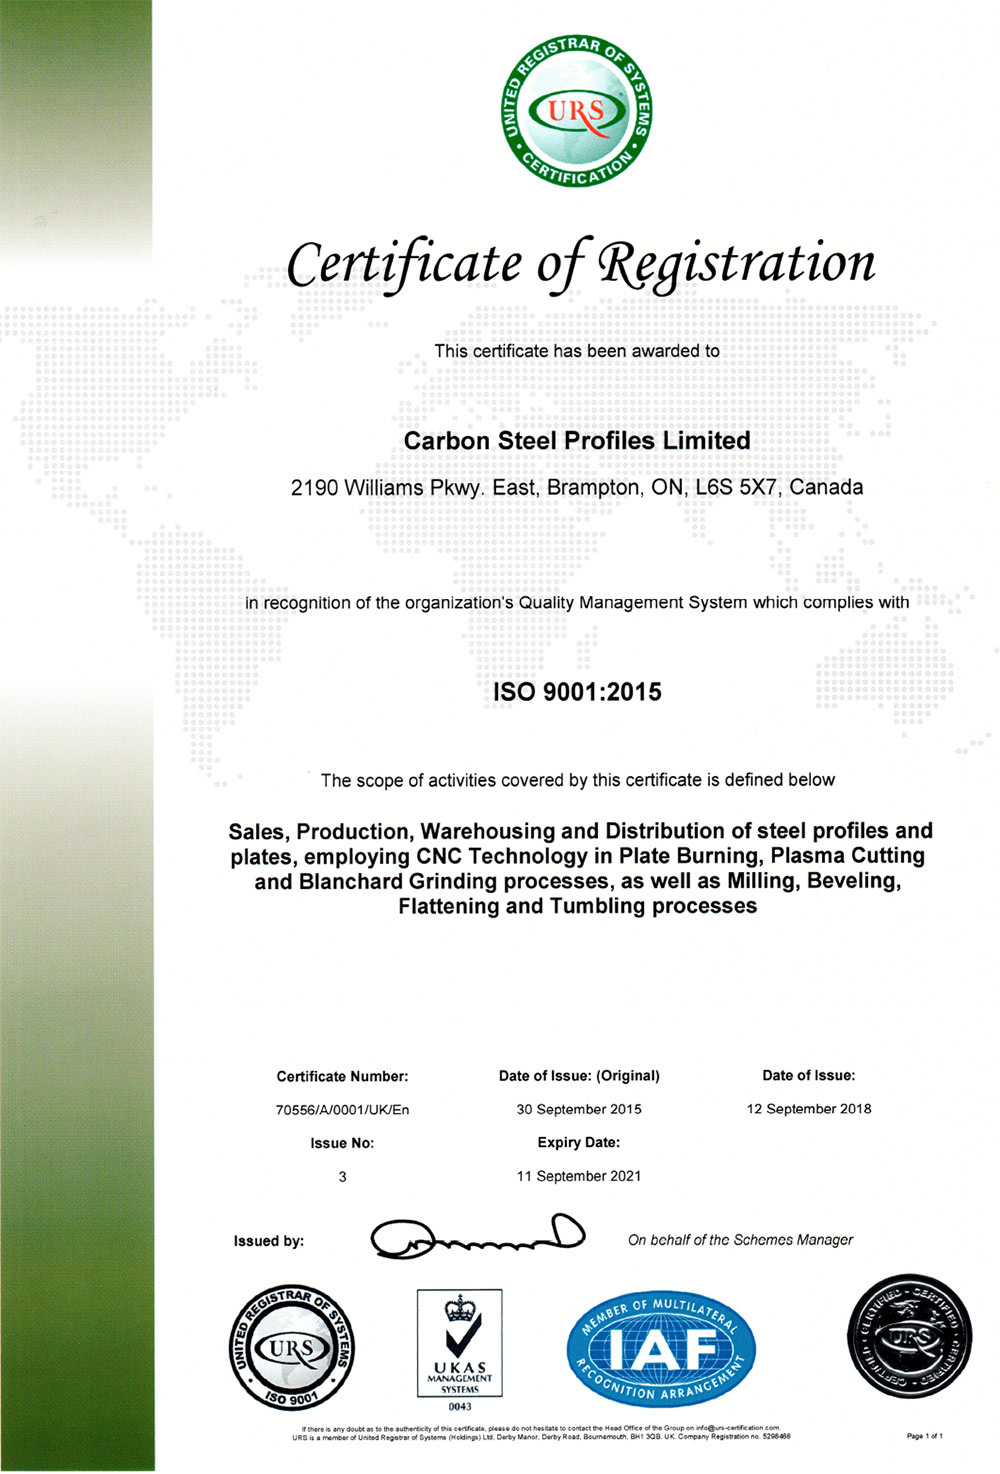 Carbon Steel Profiles Limited ISO Certificate